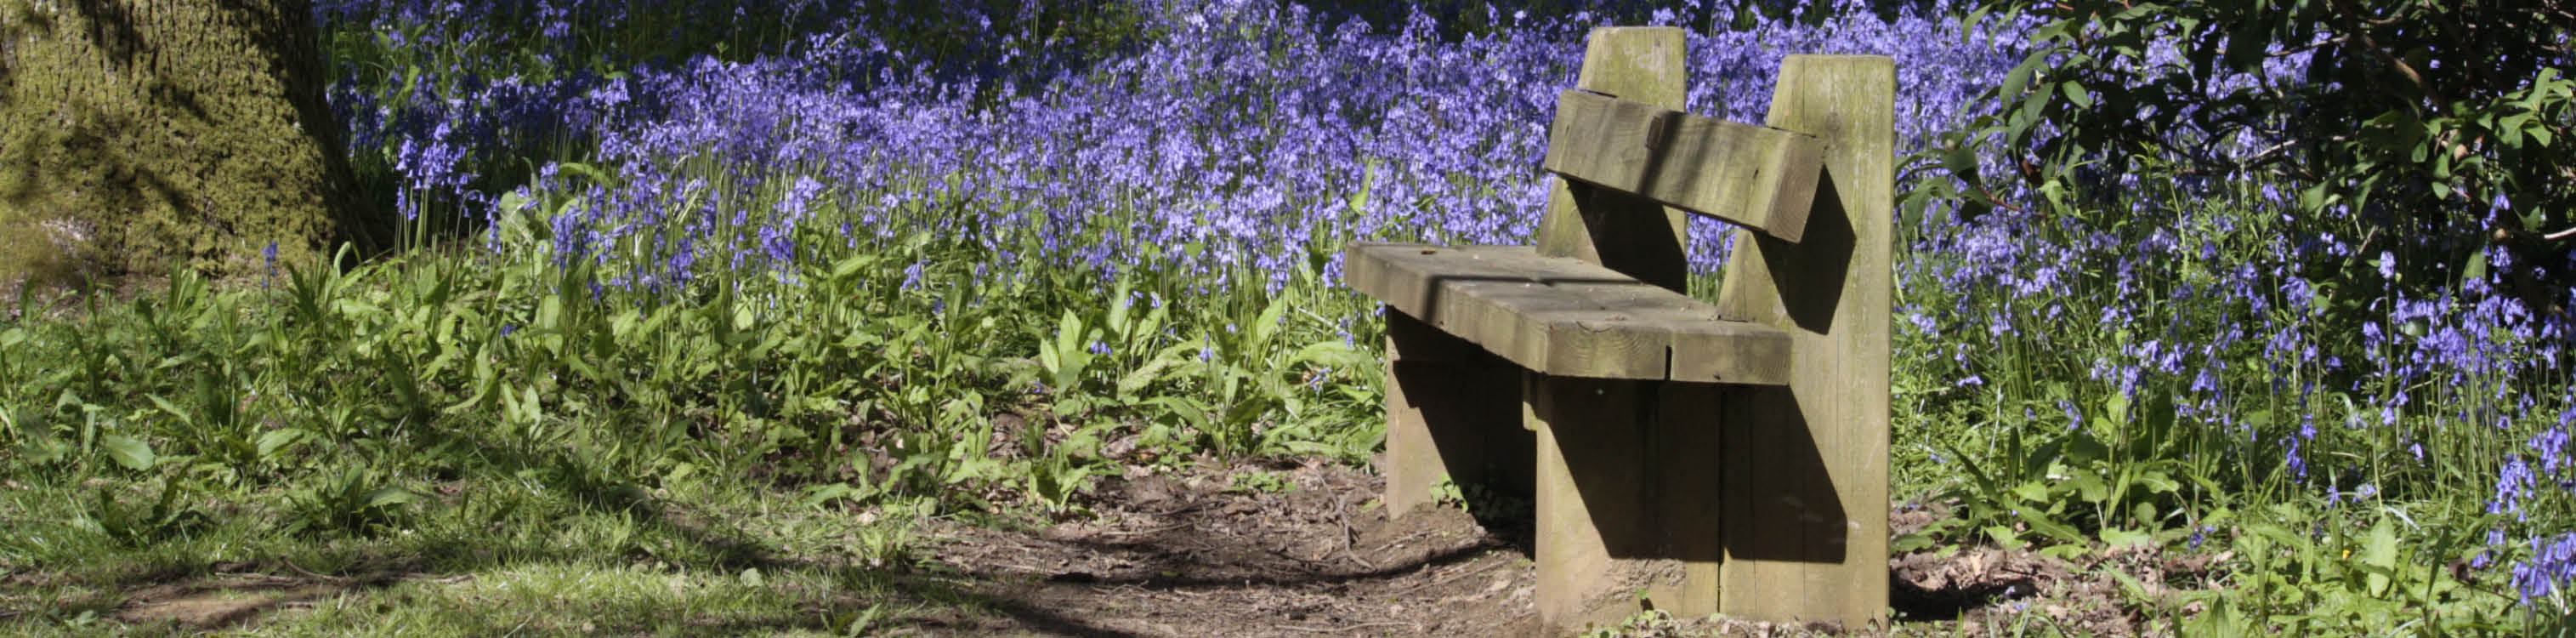 Sponsored bench surrounded by bluebells